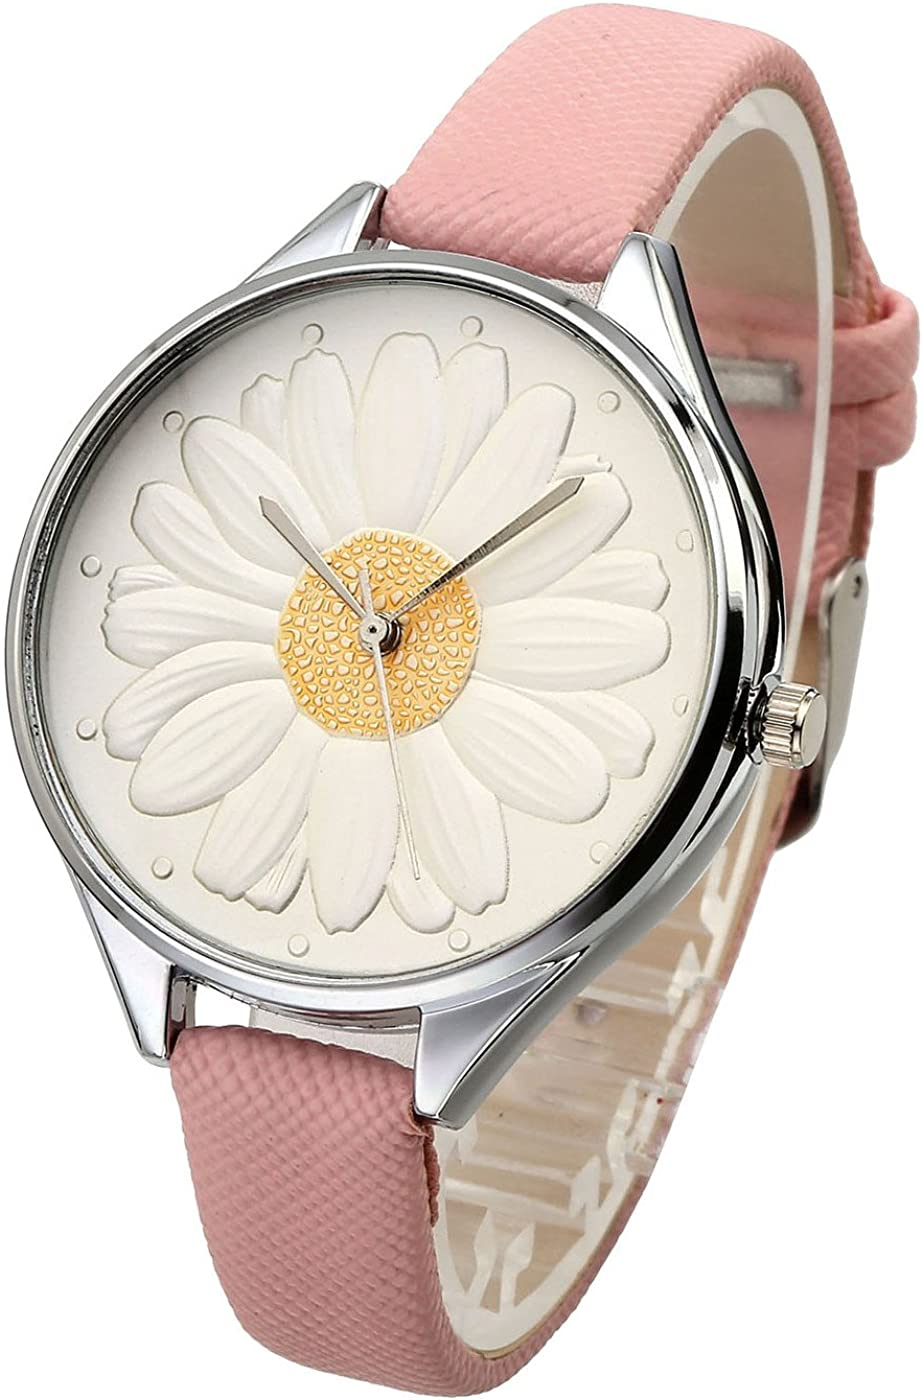 Top Plaza Women Casual Elegant Silver Round Case Thin PU Leather Band Daisy Carve Dial Analog Quartz Watch 30M Waterproof White